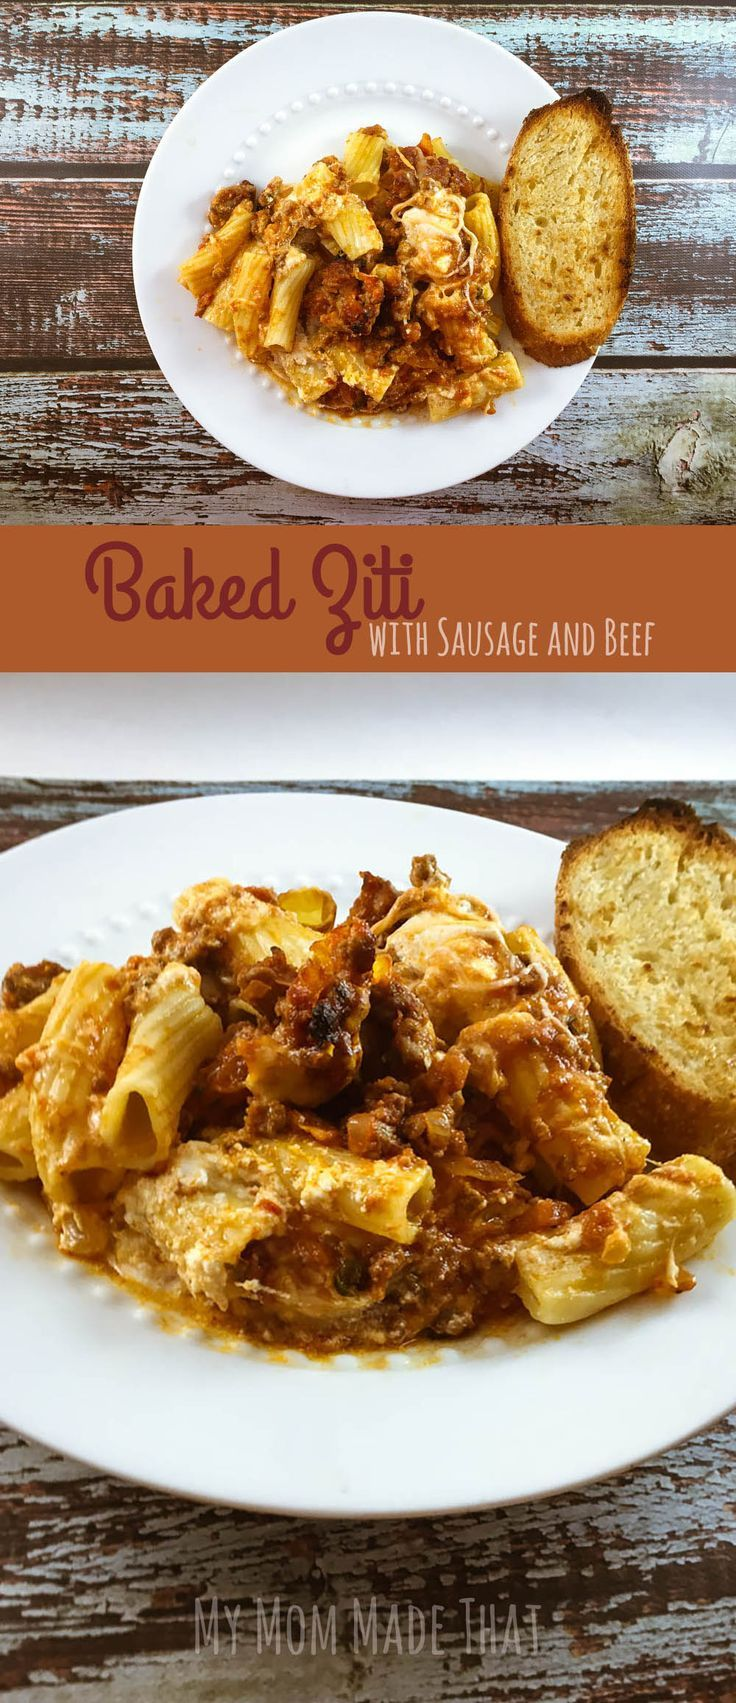 My Mom Made That: Baked Ziti Recipe with sausage and ground beef.  It makes plenty for a large family or leftovers!